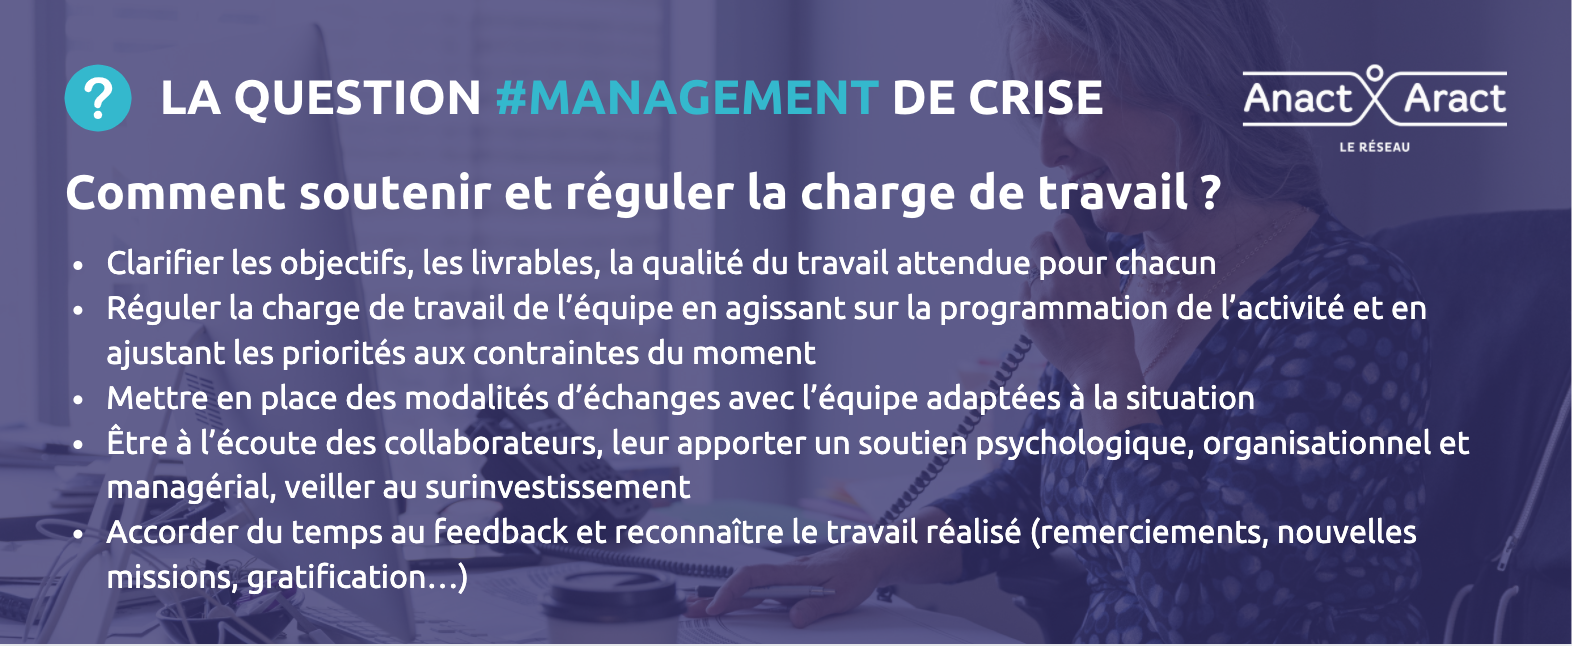 question-mgt-crise 3